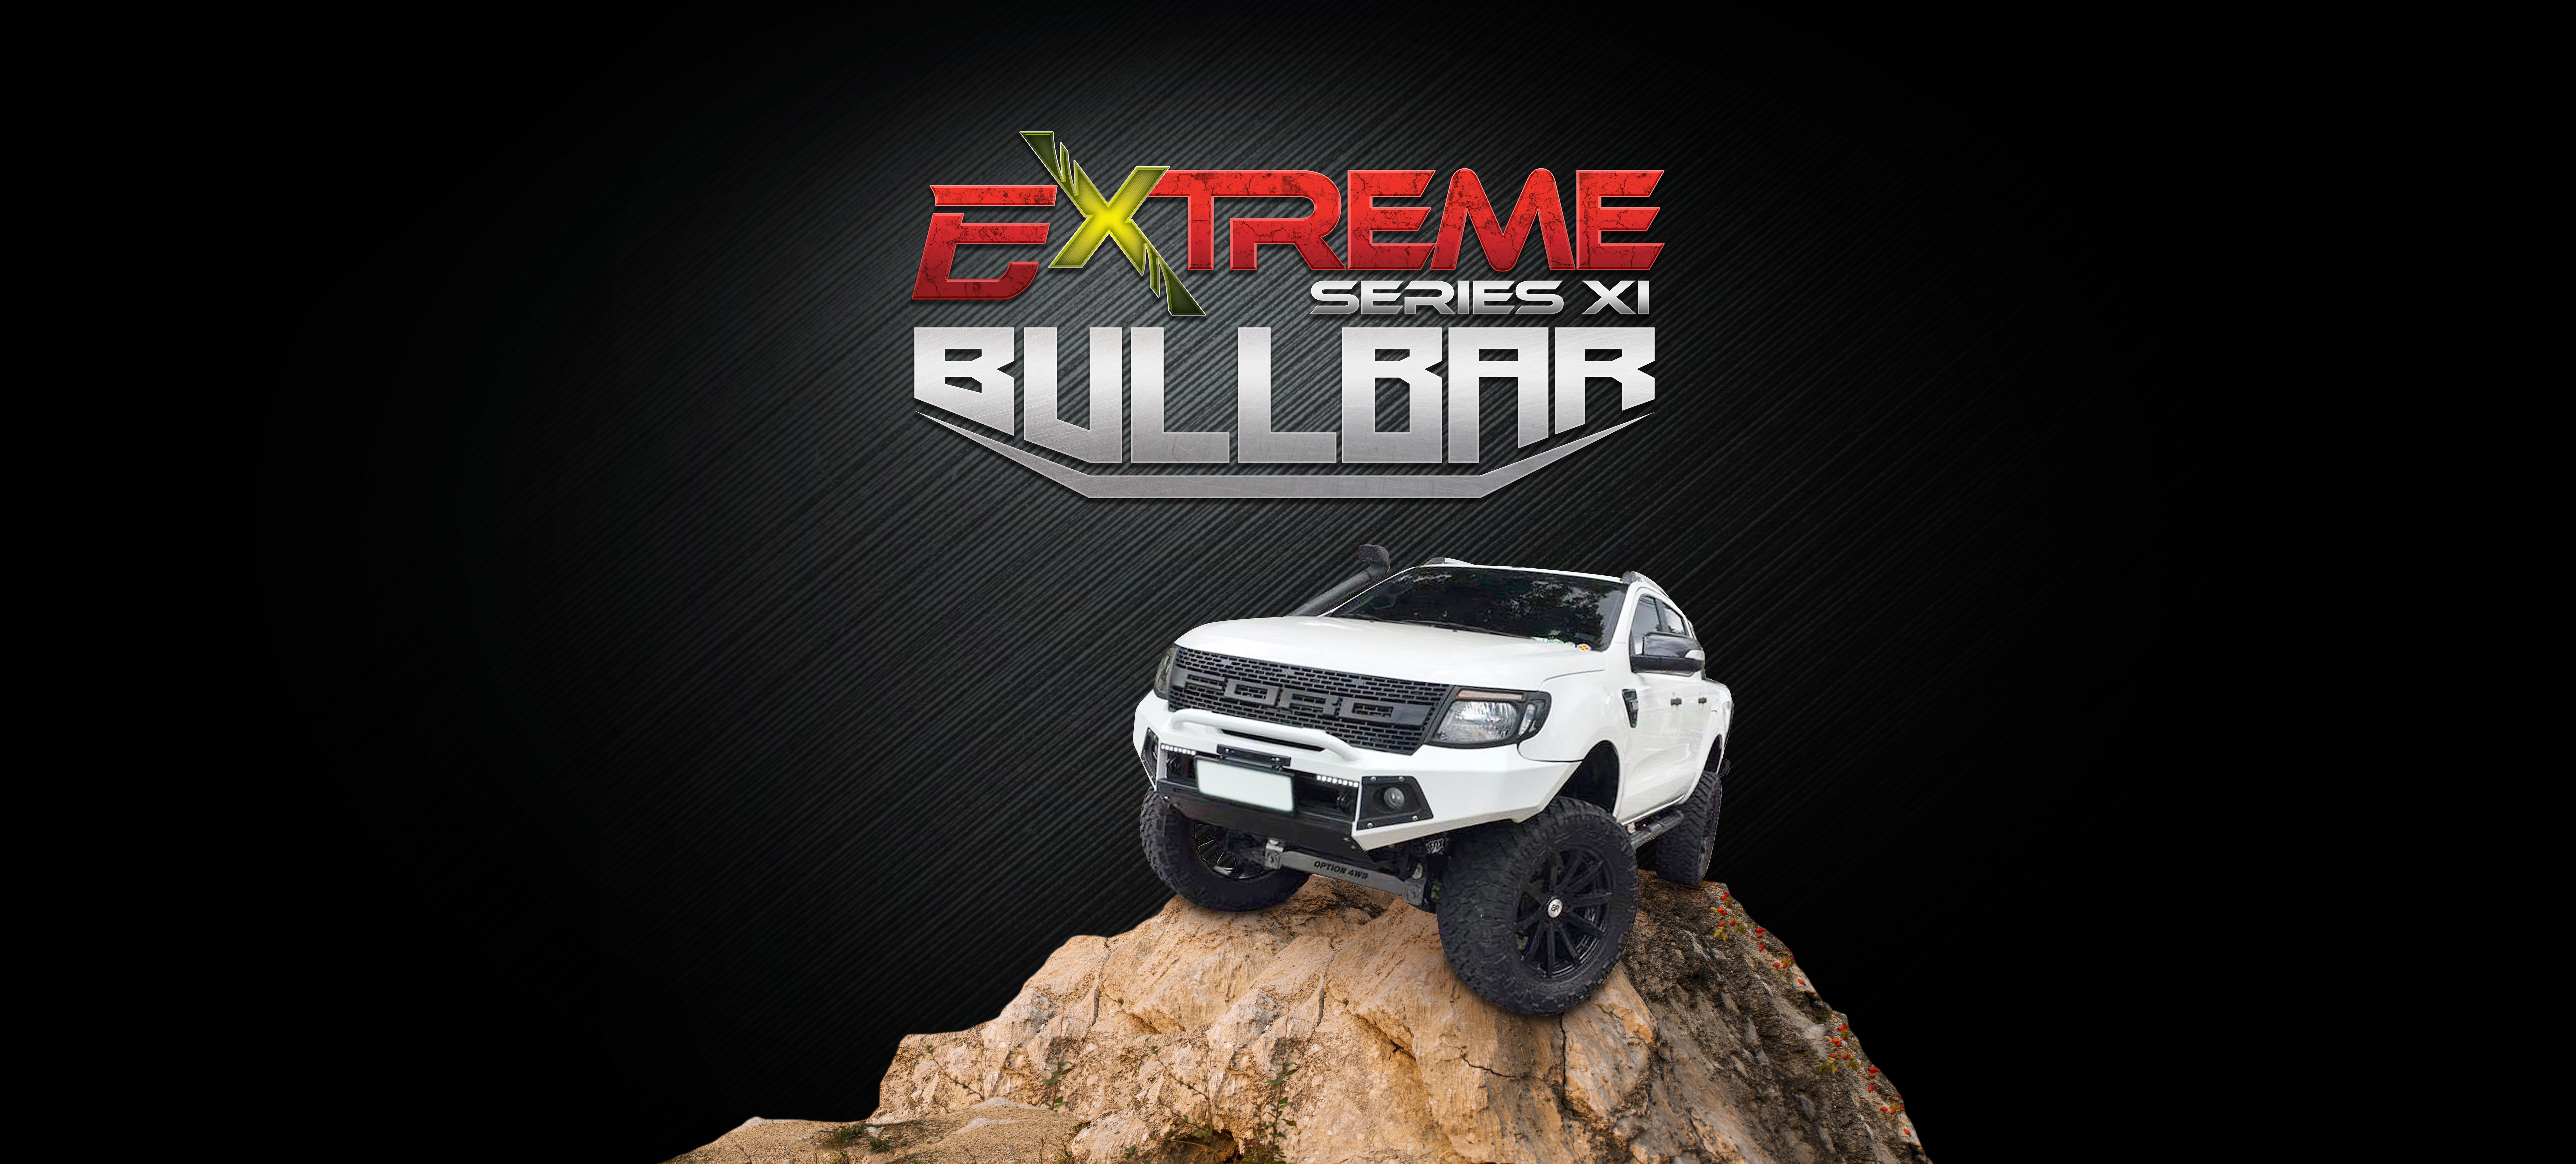 4X4 ACCESSORIES NEW EXTREME BULLBAR BANNER